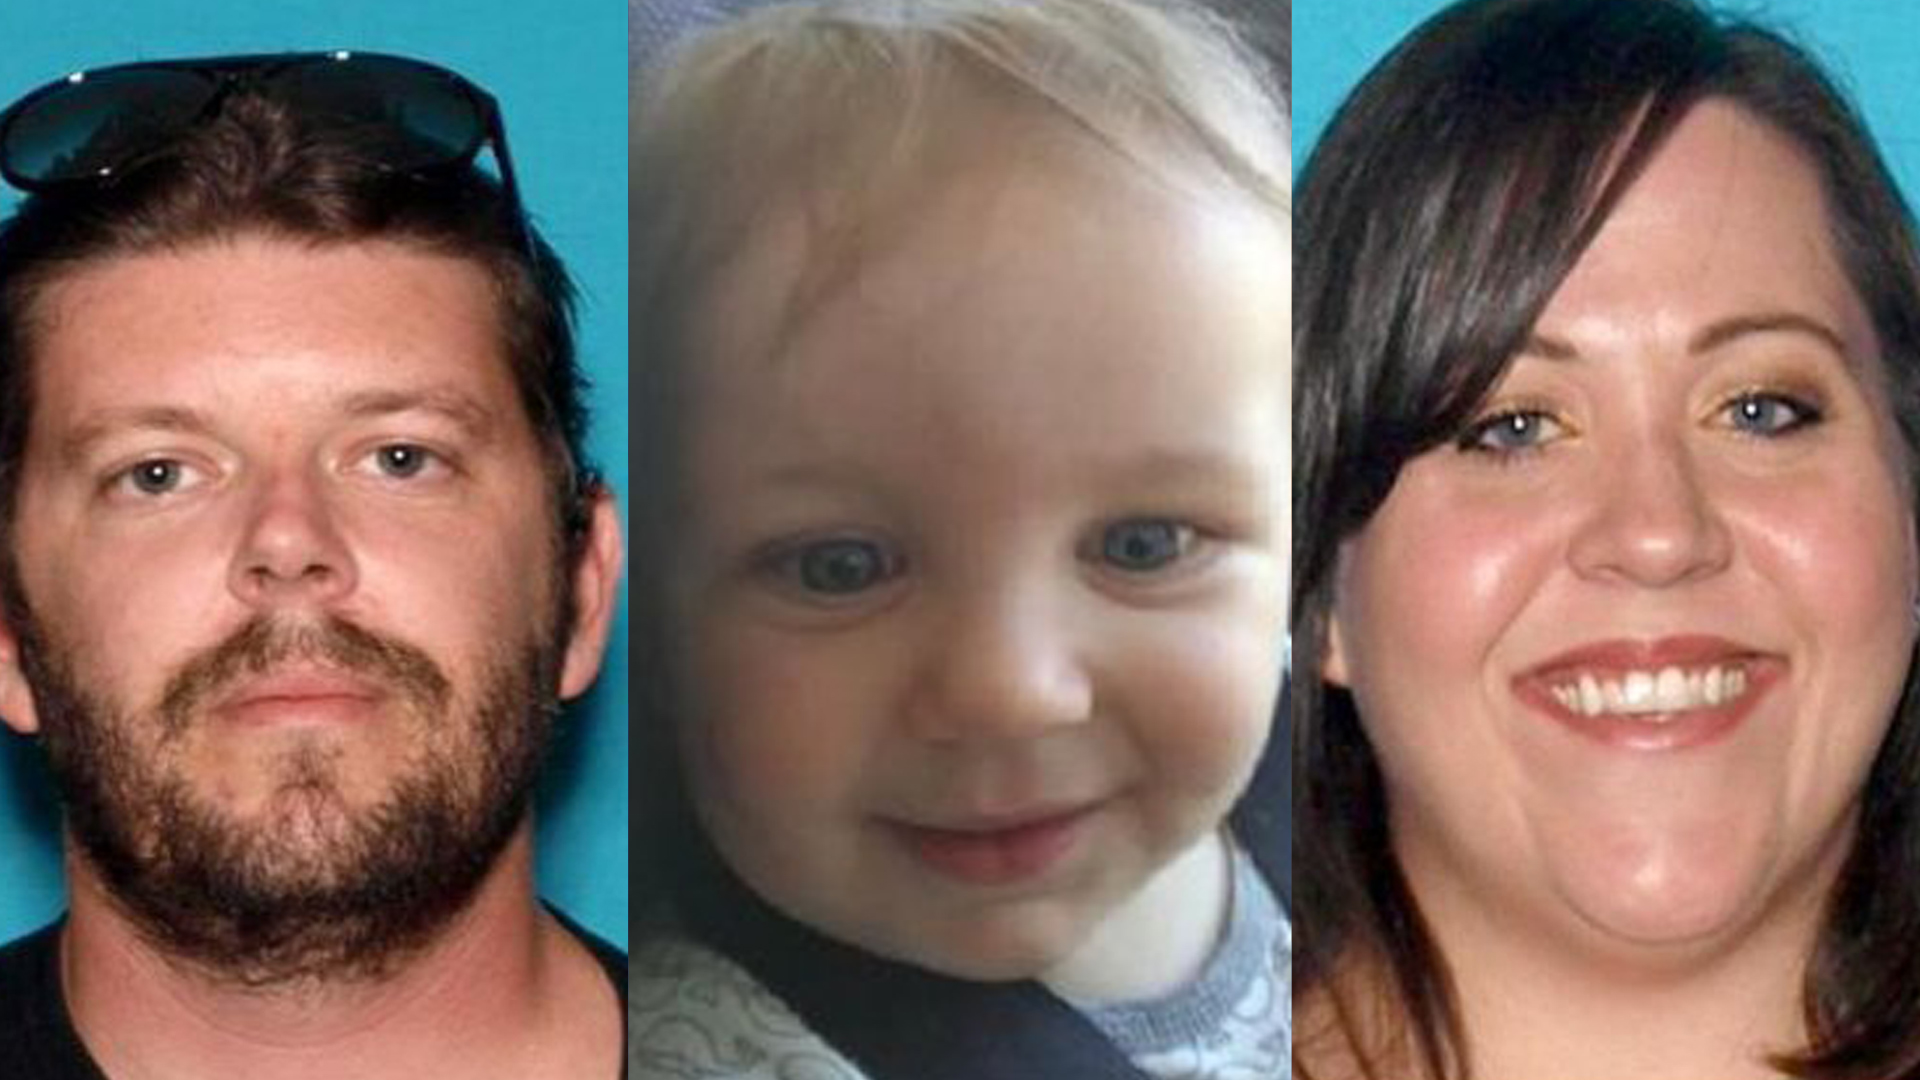 Brandon Alexander, seen left, is the suspect in an Amber Alert issued Oct. 27, 2018. The child and mother reported abducted are seen in the other photos. (Credit: Upland Police)